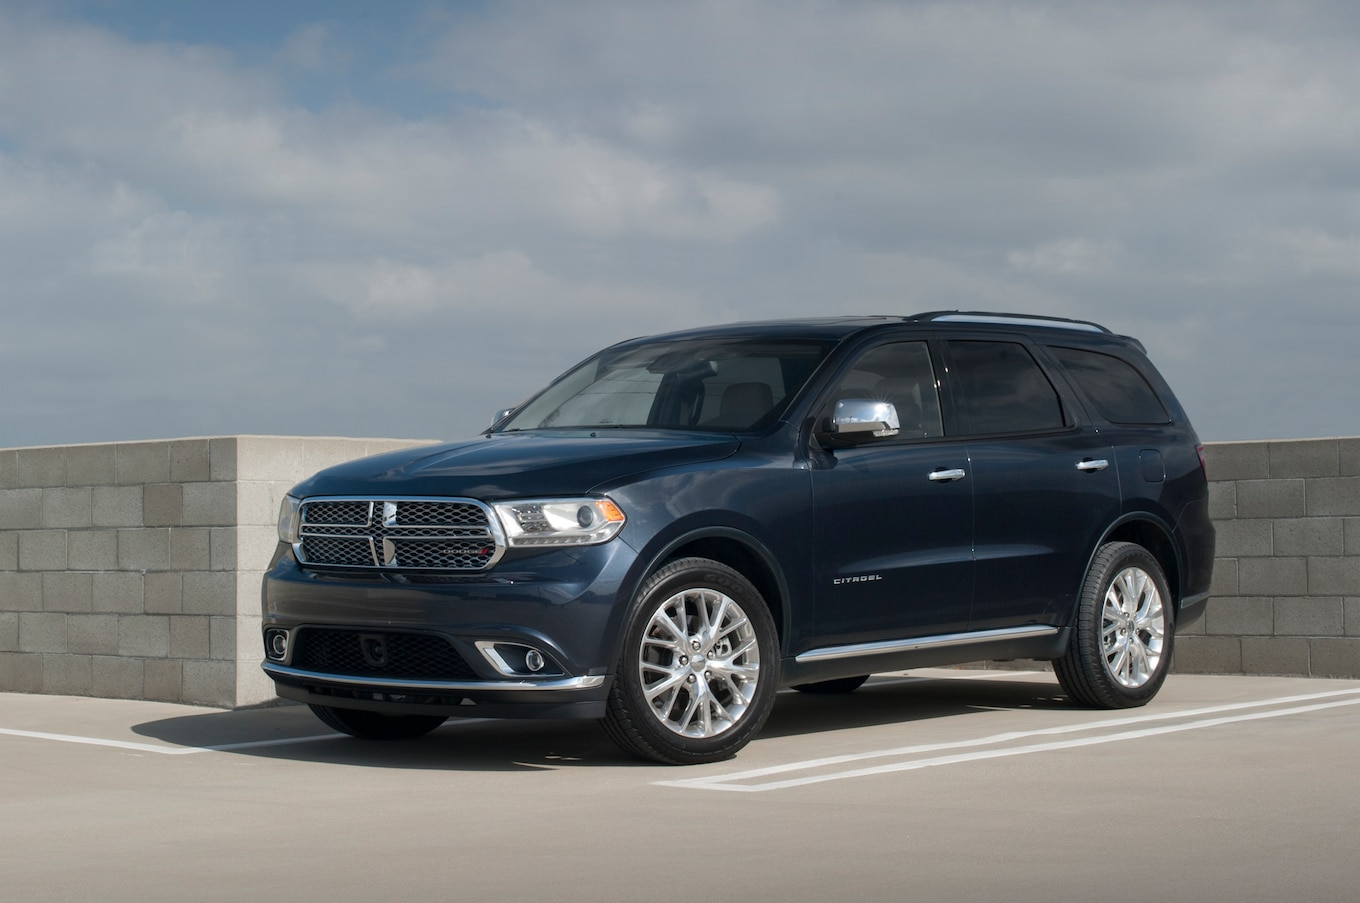 2014 Dodge Durango Reviews And Rating  Motor Trend